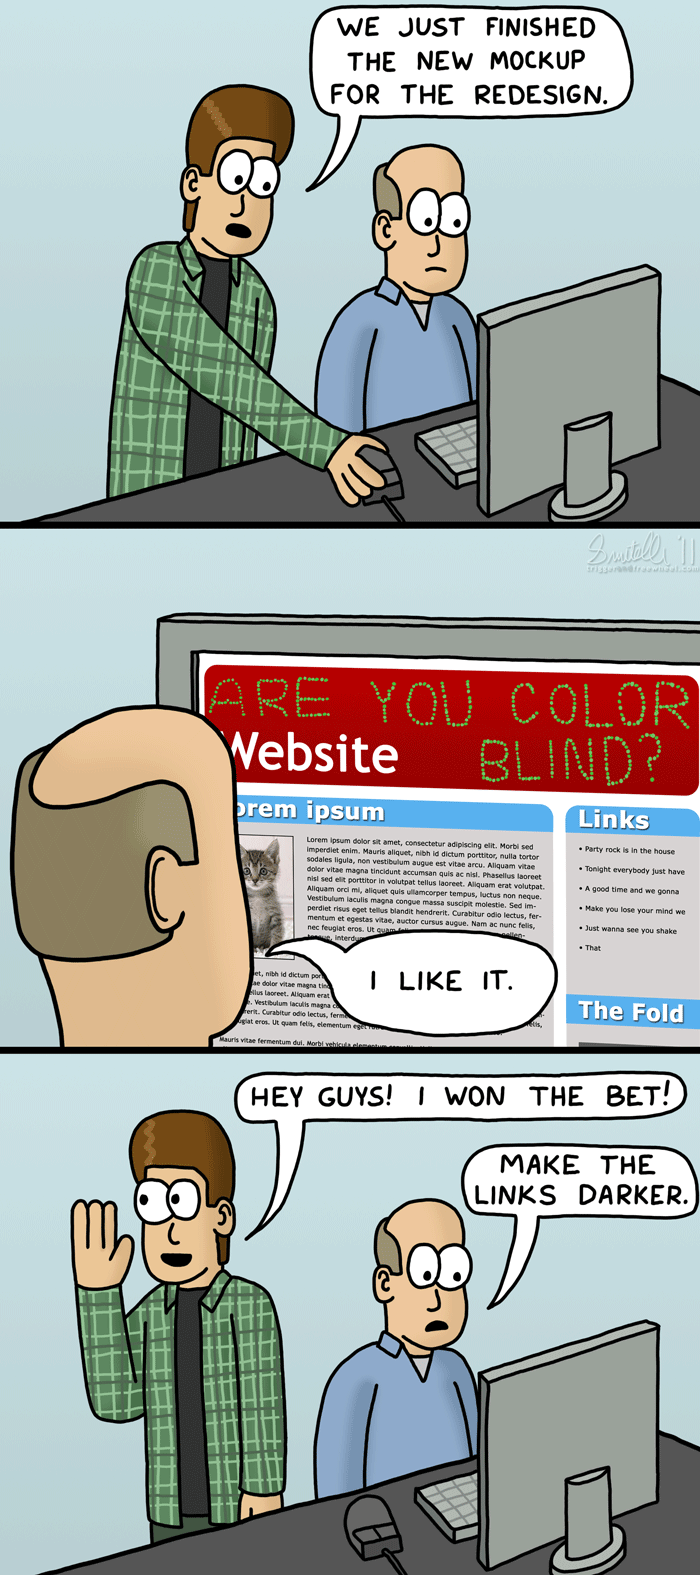 The Redesign